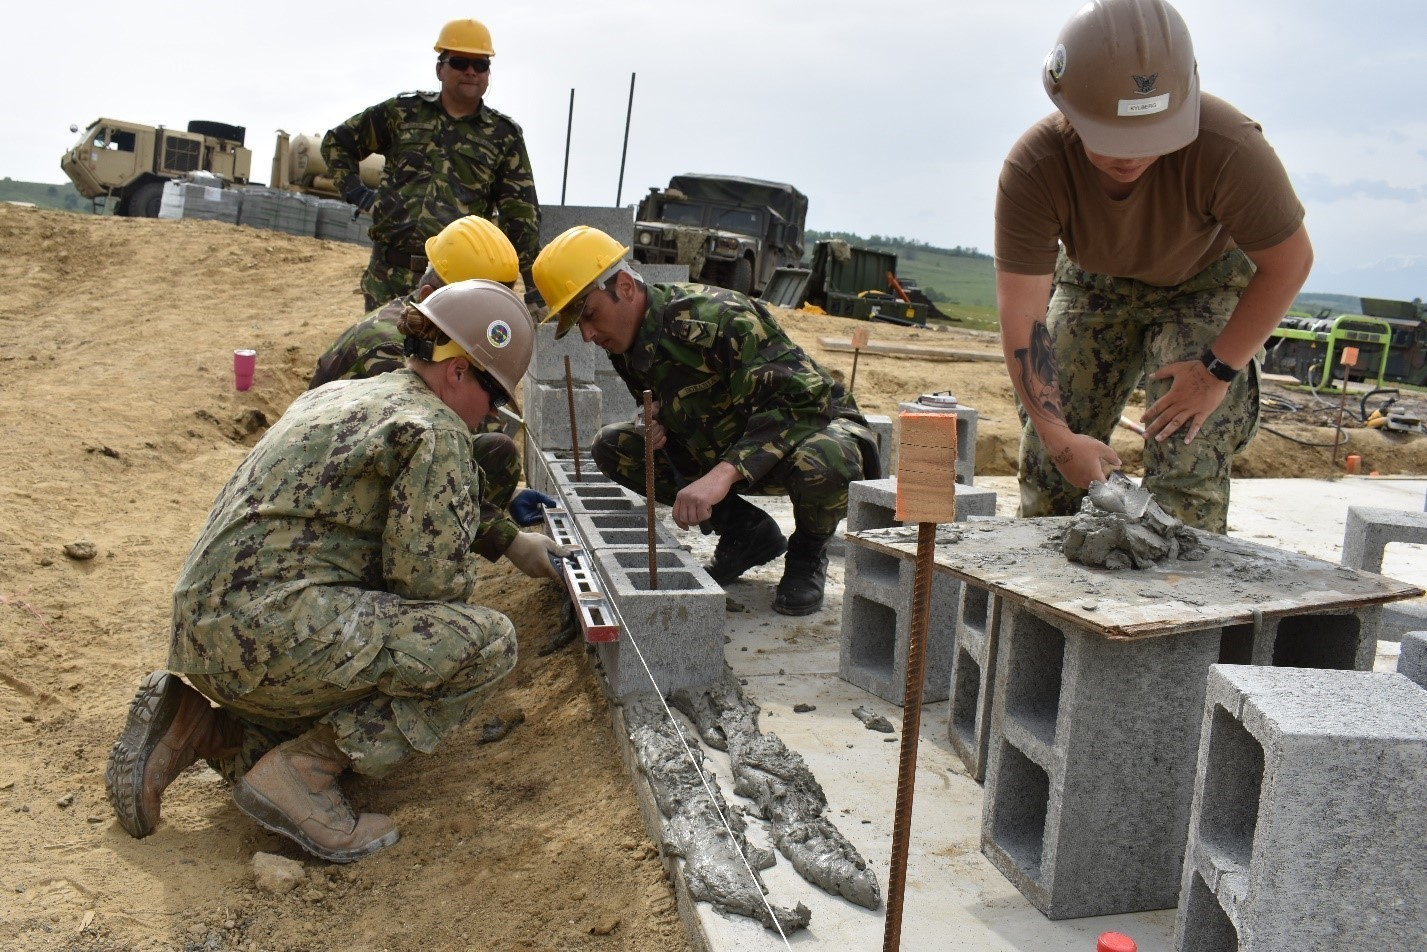 Builder 3rd Class Alexis Franklin works with Corporals Giurca, Szabo, and Vagu from the Romanian 10th Engineer Brigade as they place concrete blocks for the wall of an Operations and Storage Building as a part of Resolute Castle 17 at Joint National Training Center, Cincu, Romania, while Builder 3rd Class Samantha Kylberg provides mortar. Resolute Castle 17 is an exercise strengthening the NATO alliance and enhancing its capacity for joint training and response to threats within the region.